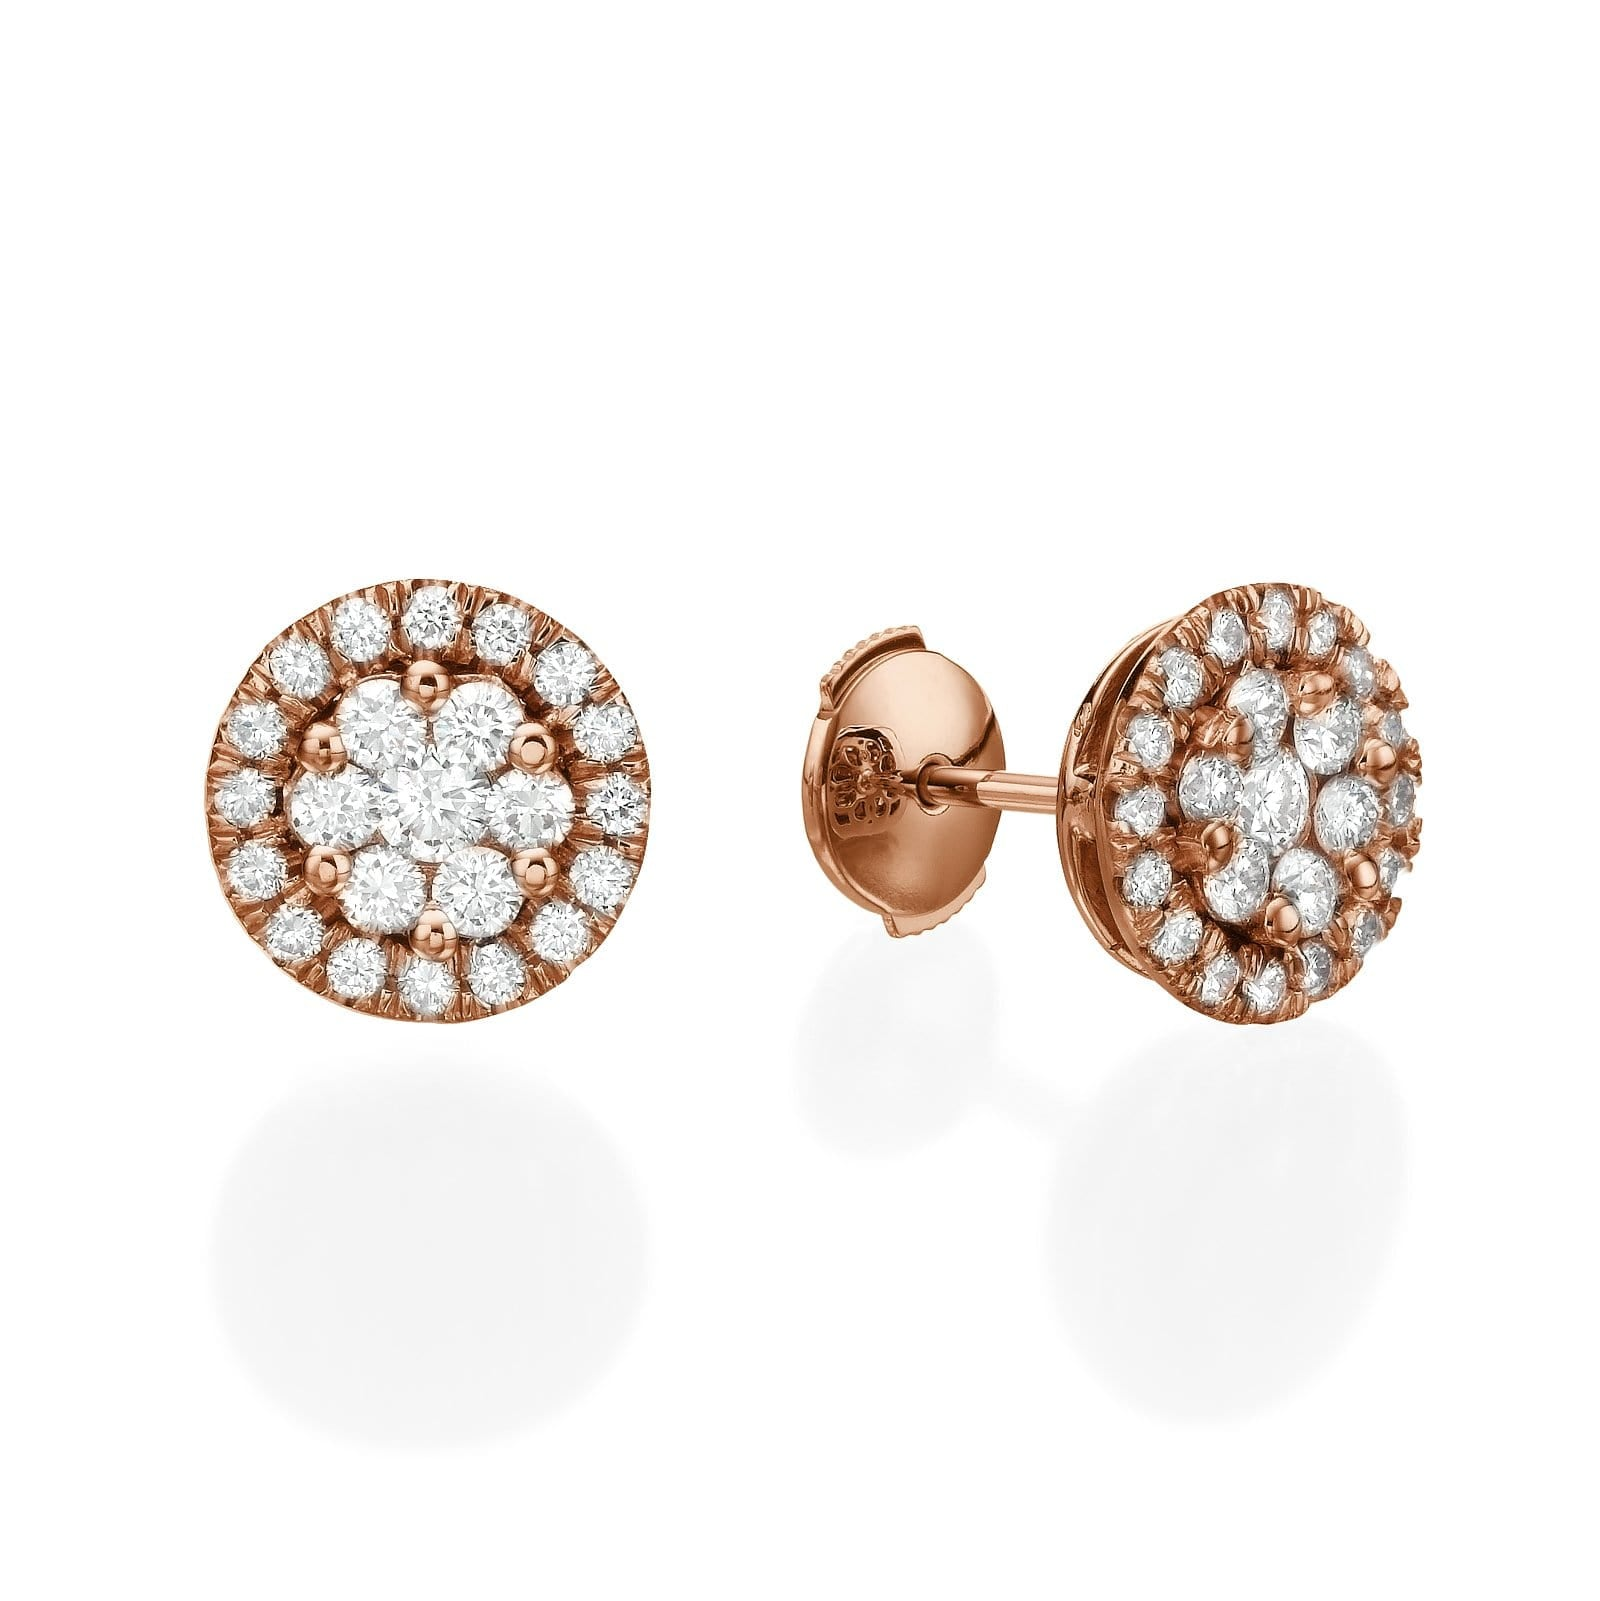 Big Round Diamond Cluster Earrings